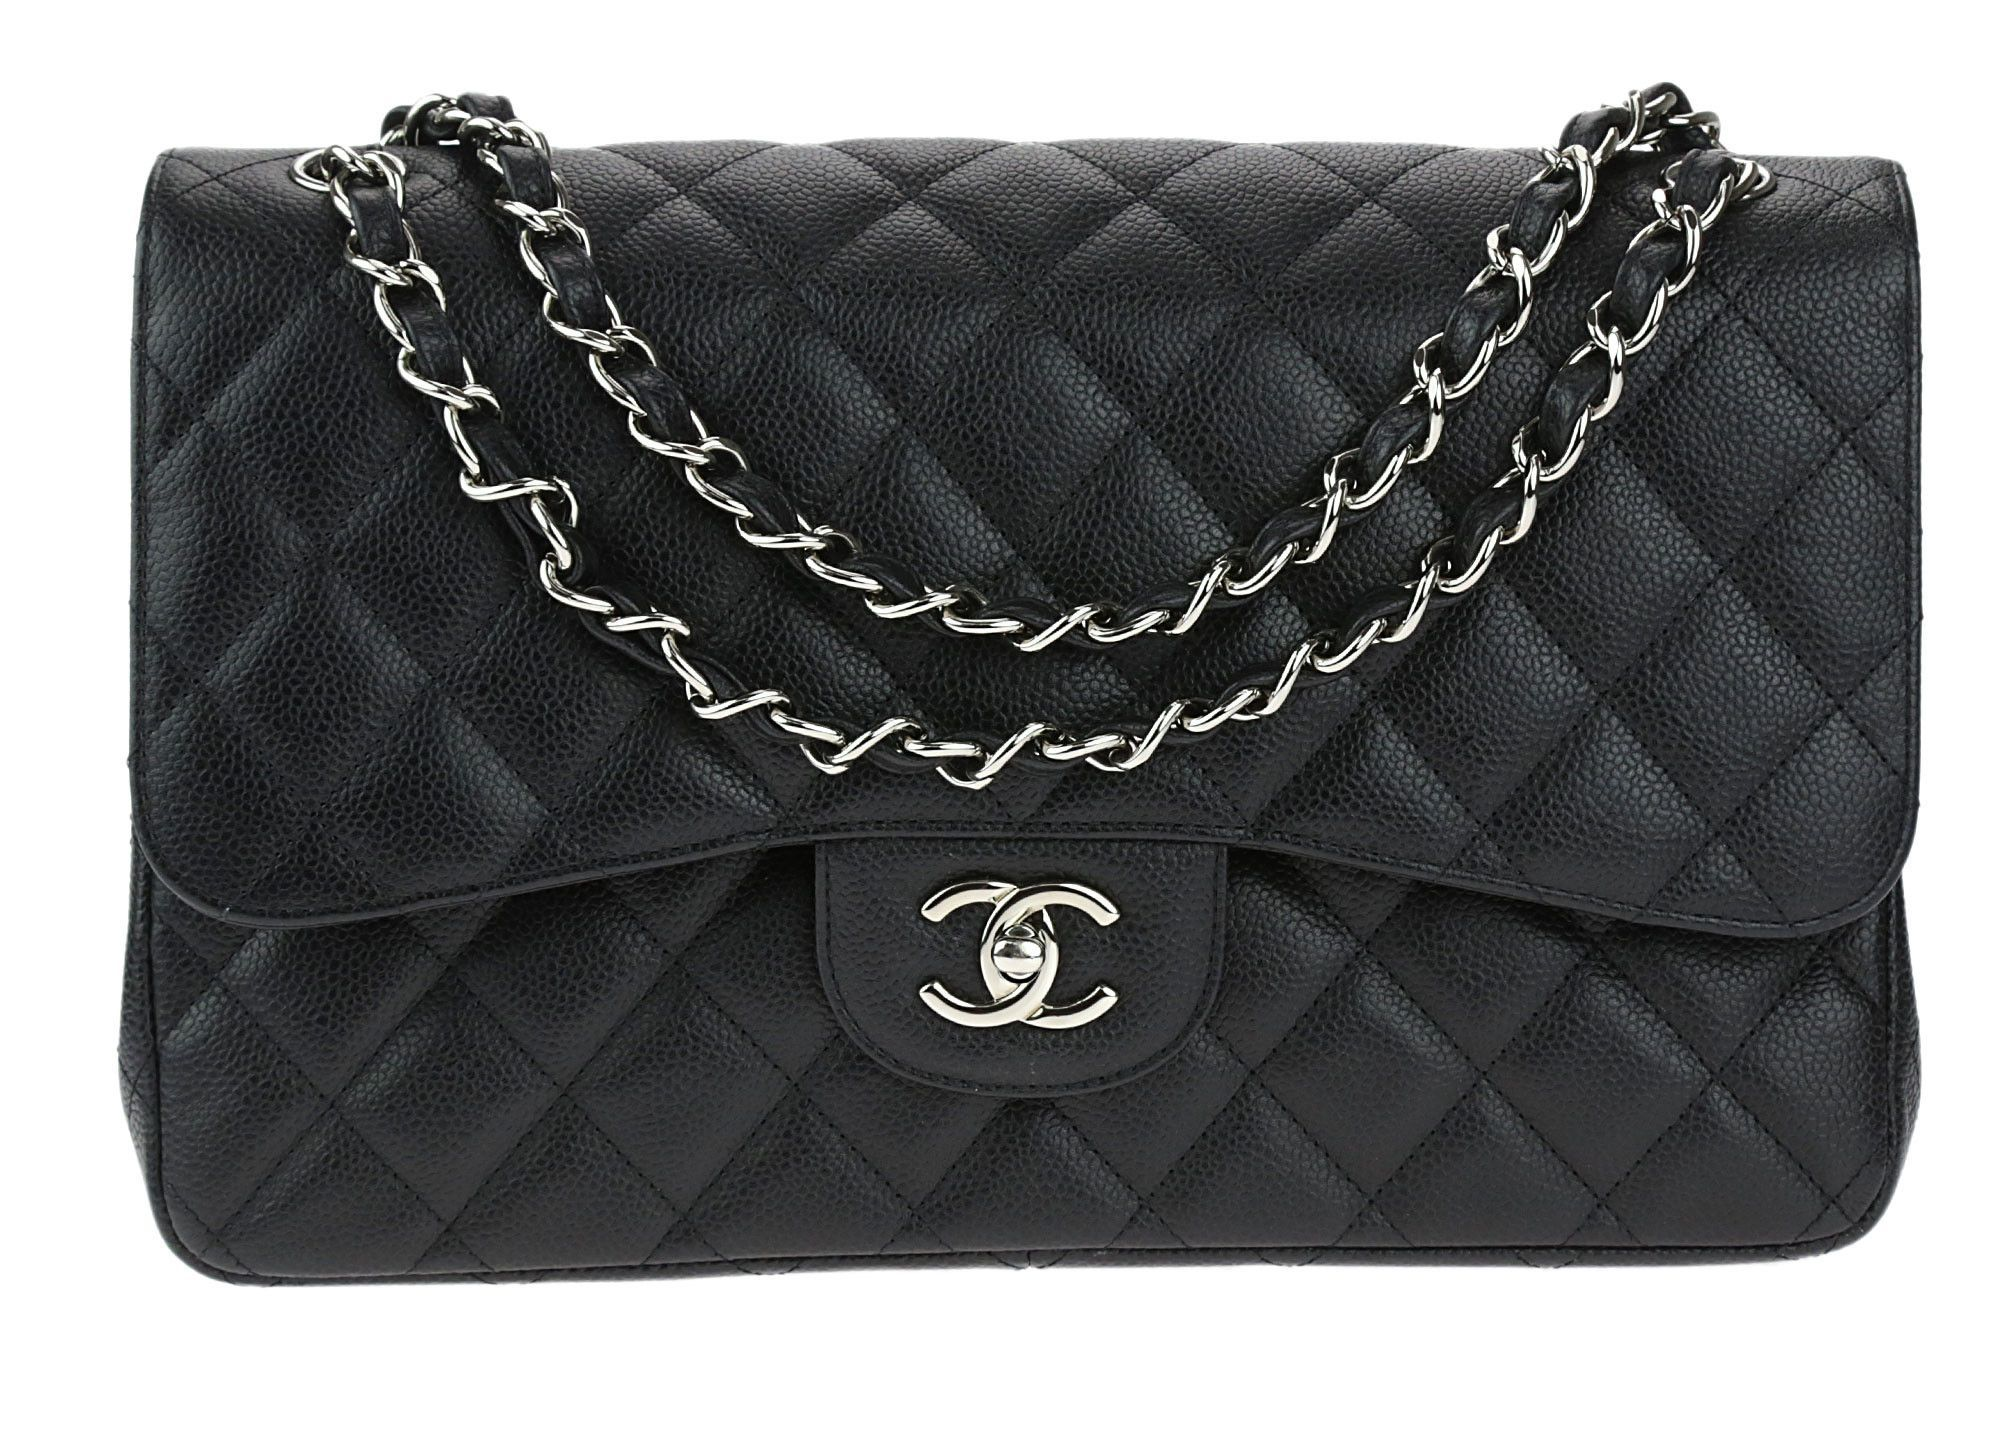 c9f0f73382a061 This Chanel Black Caviar Jumbo Double Flap Bag will easily become your go  to bag.